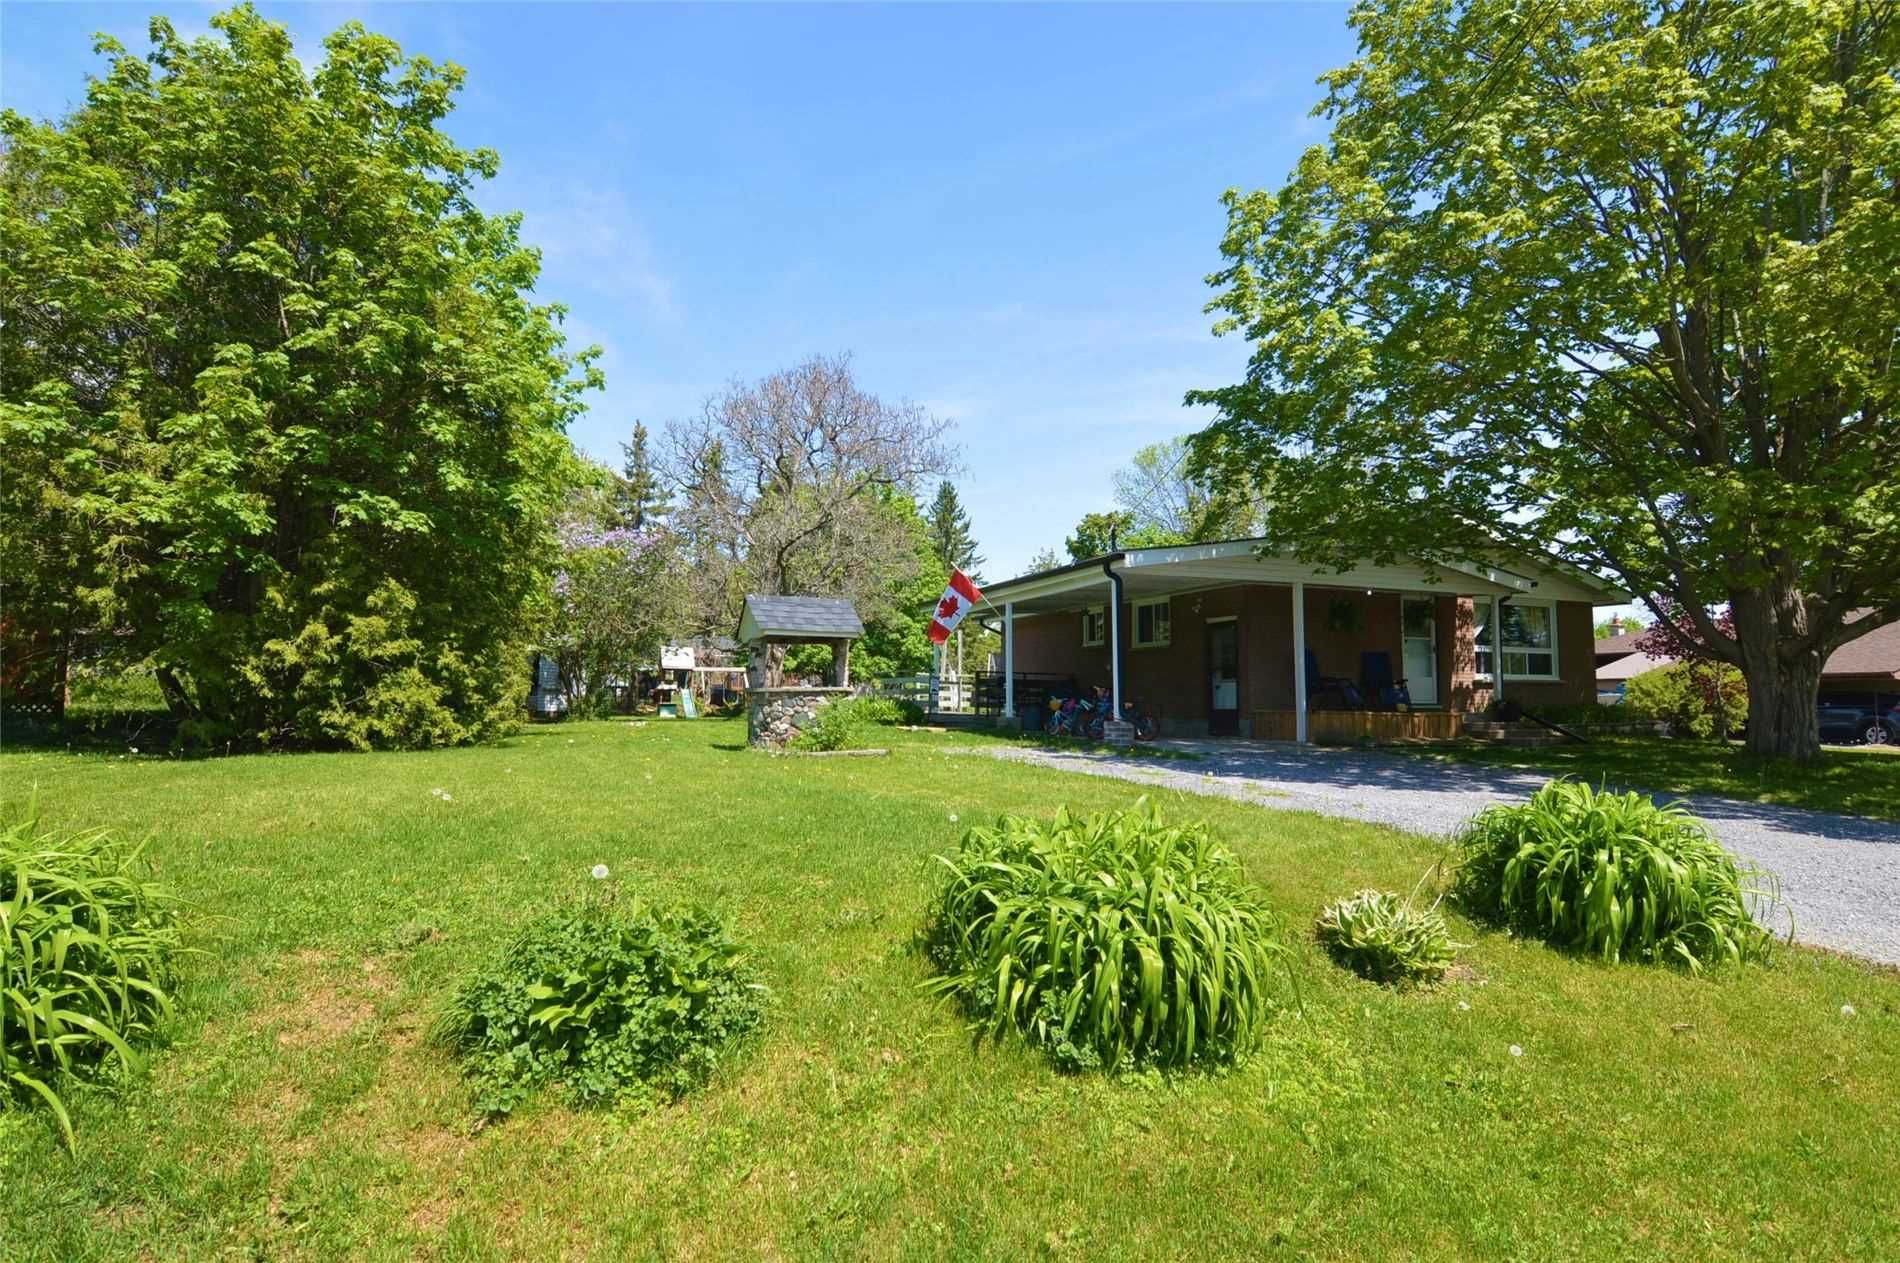 Main Photo: 18 Anne Street in Quinte West: House (Bungalow) for sale : MLS®# X5246040